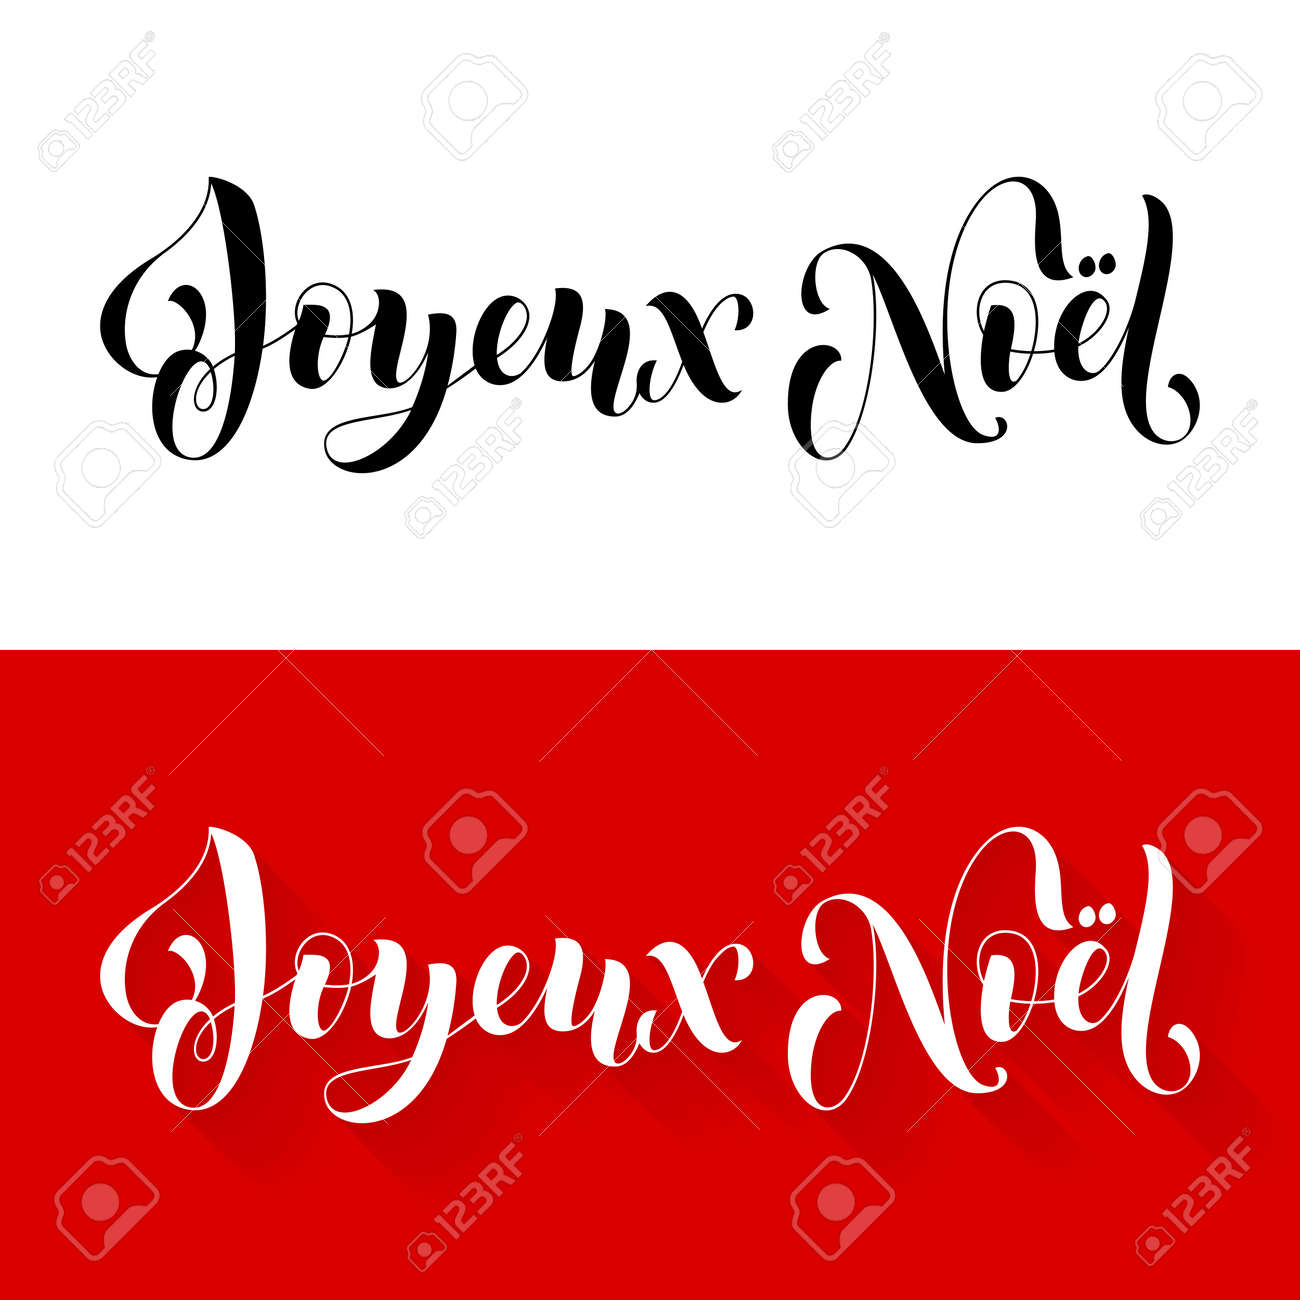 Joyeux noel greeting for french merry christmas xmas holiday joyeux noel greeting for french merry christmas xmas holiday card festive text for poster stopboris Gallery